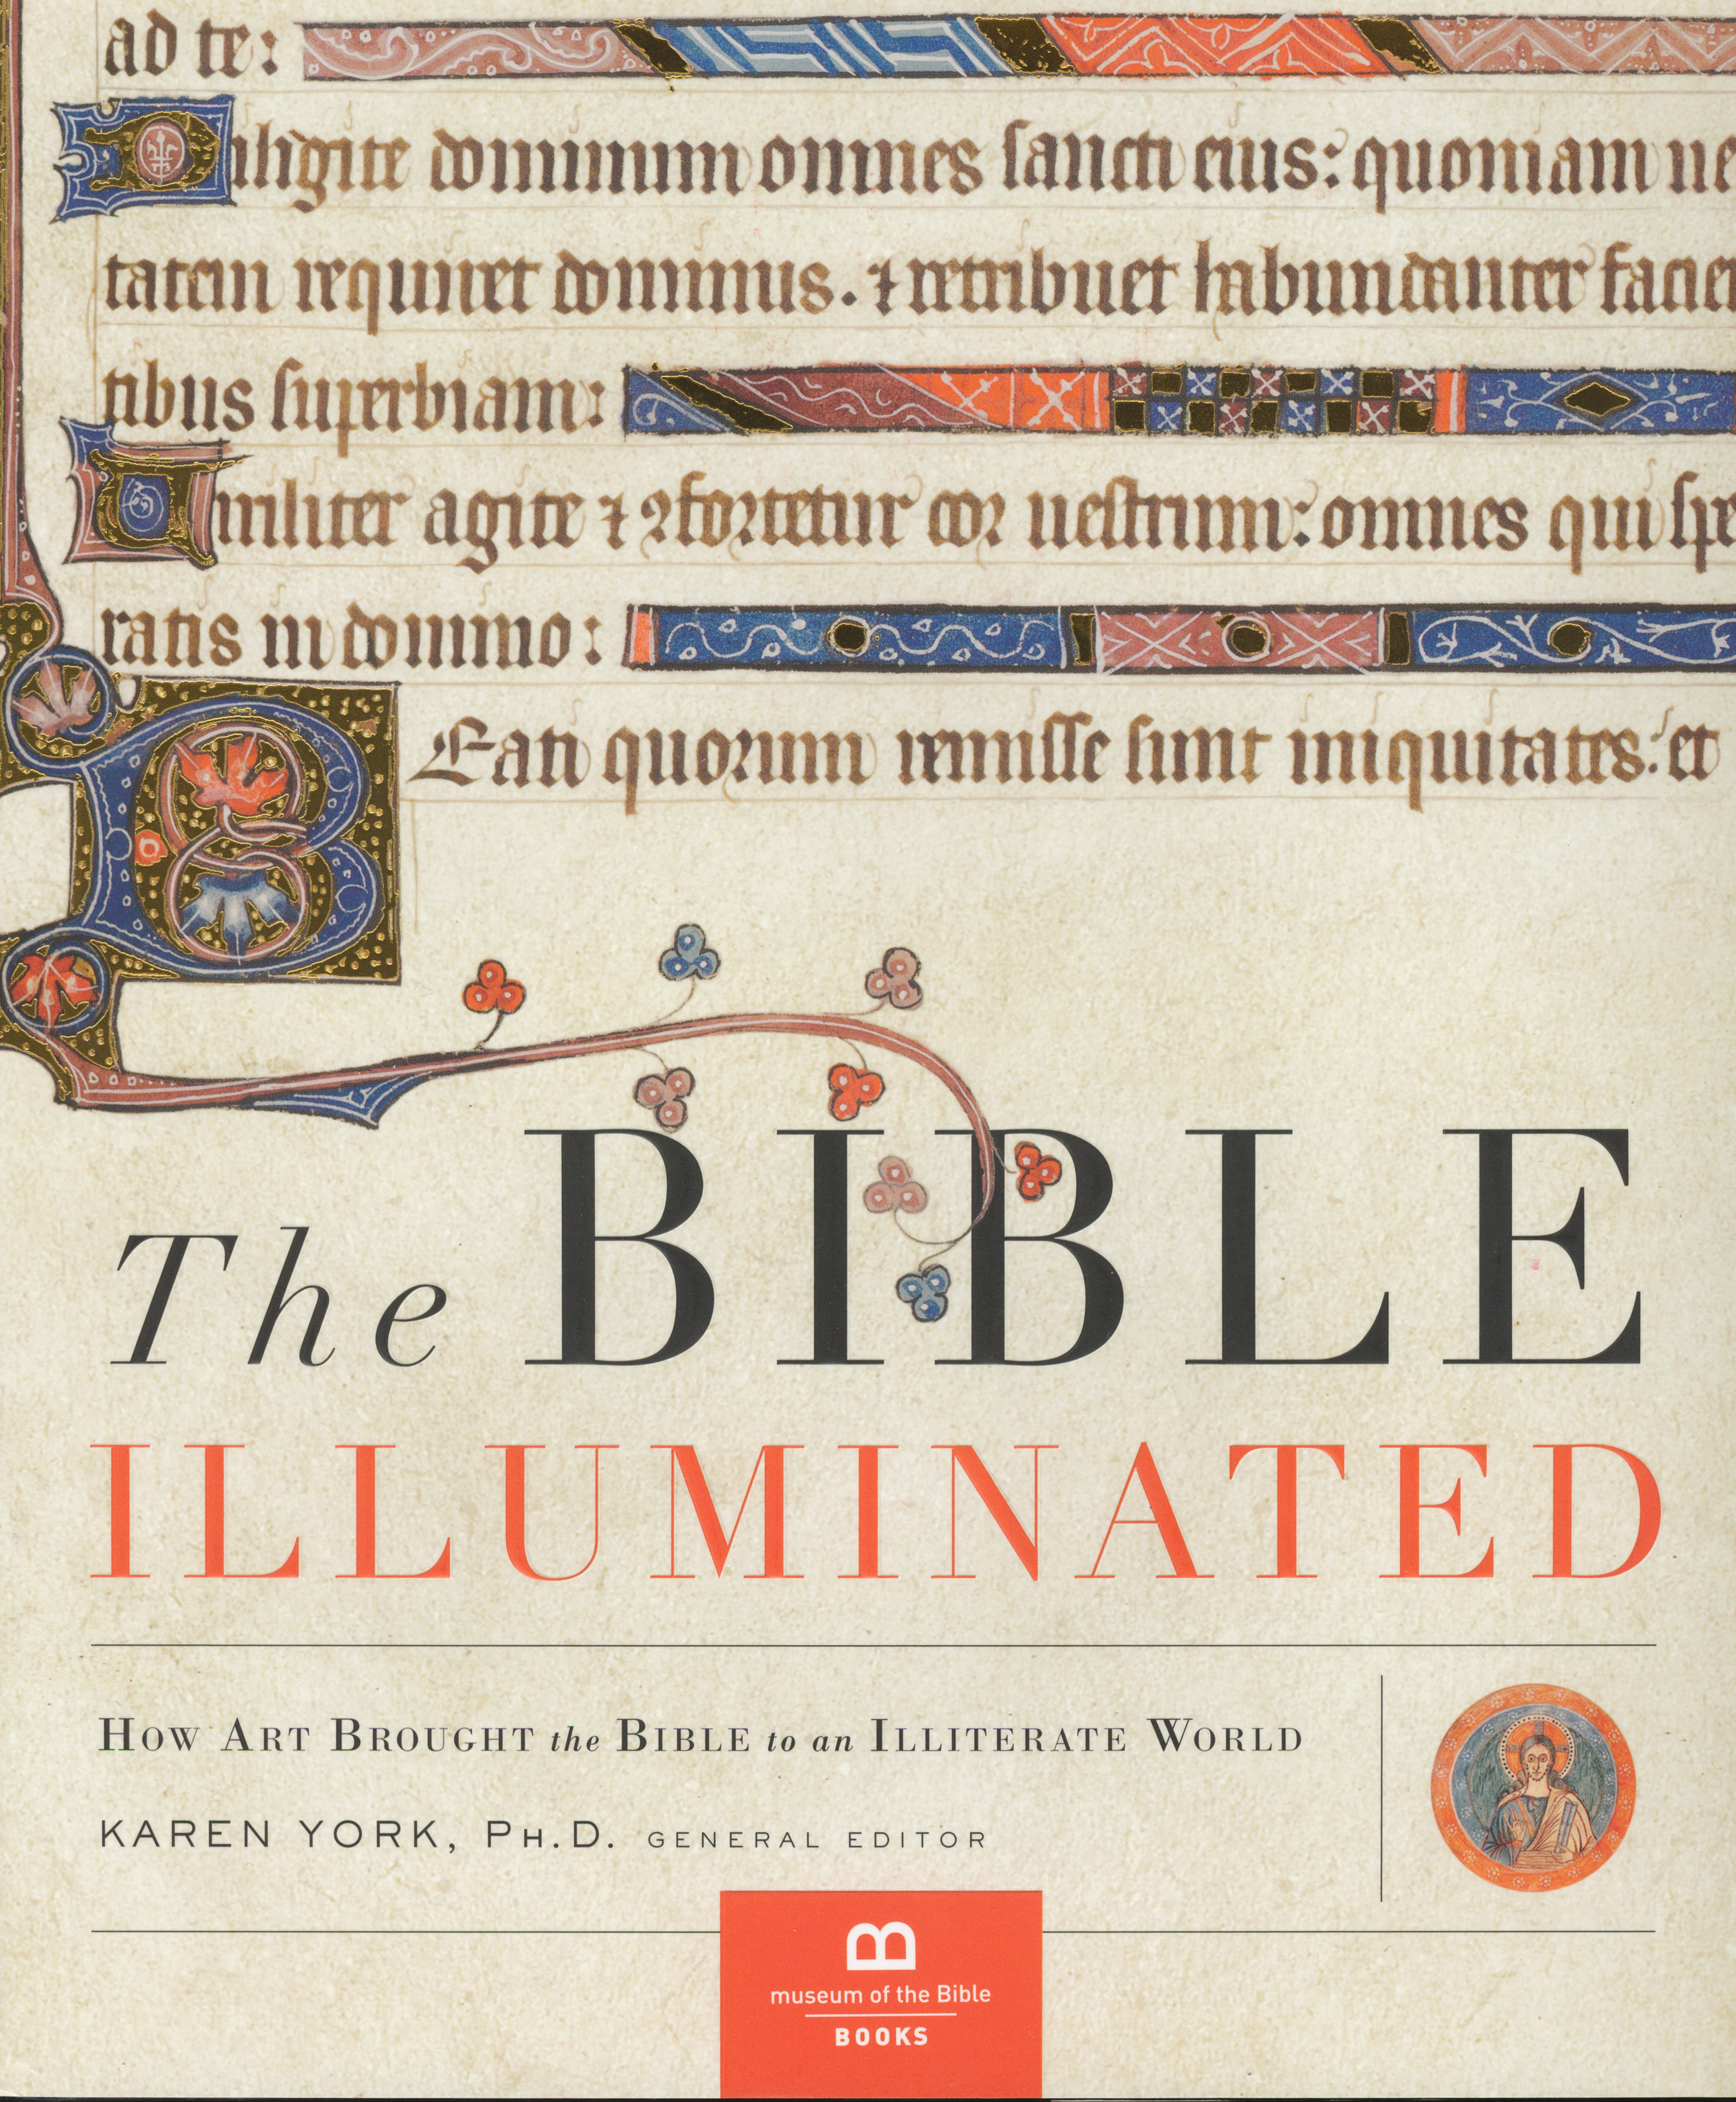 The Bible Illuminated edited by Karen York Ph.D. 108-9781945470127